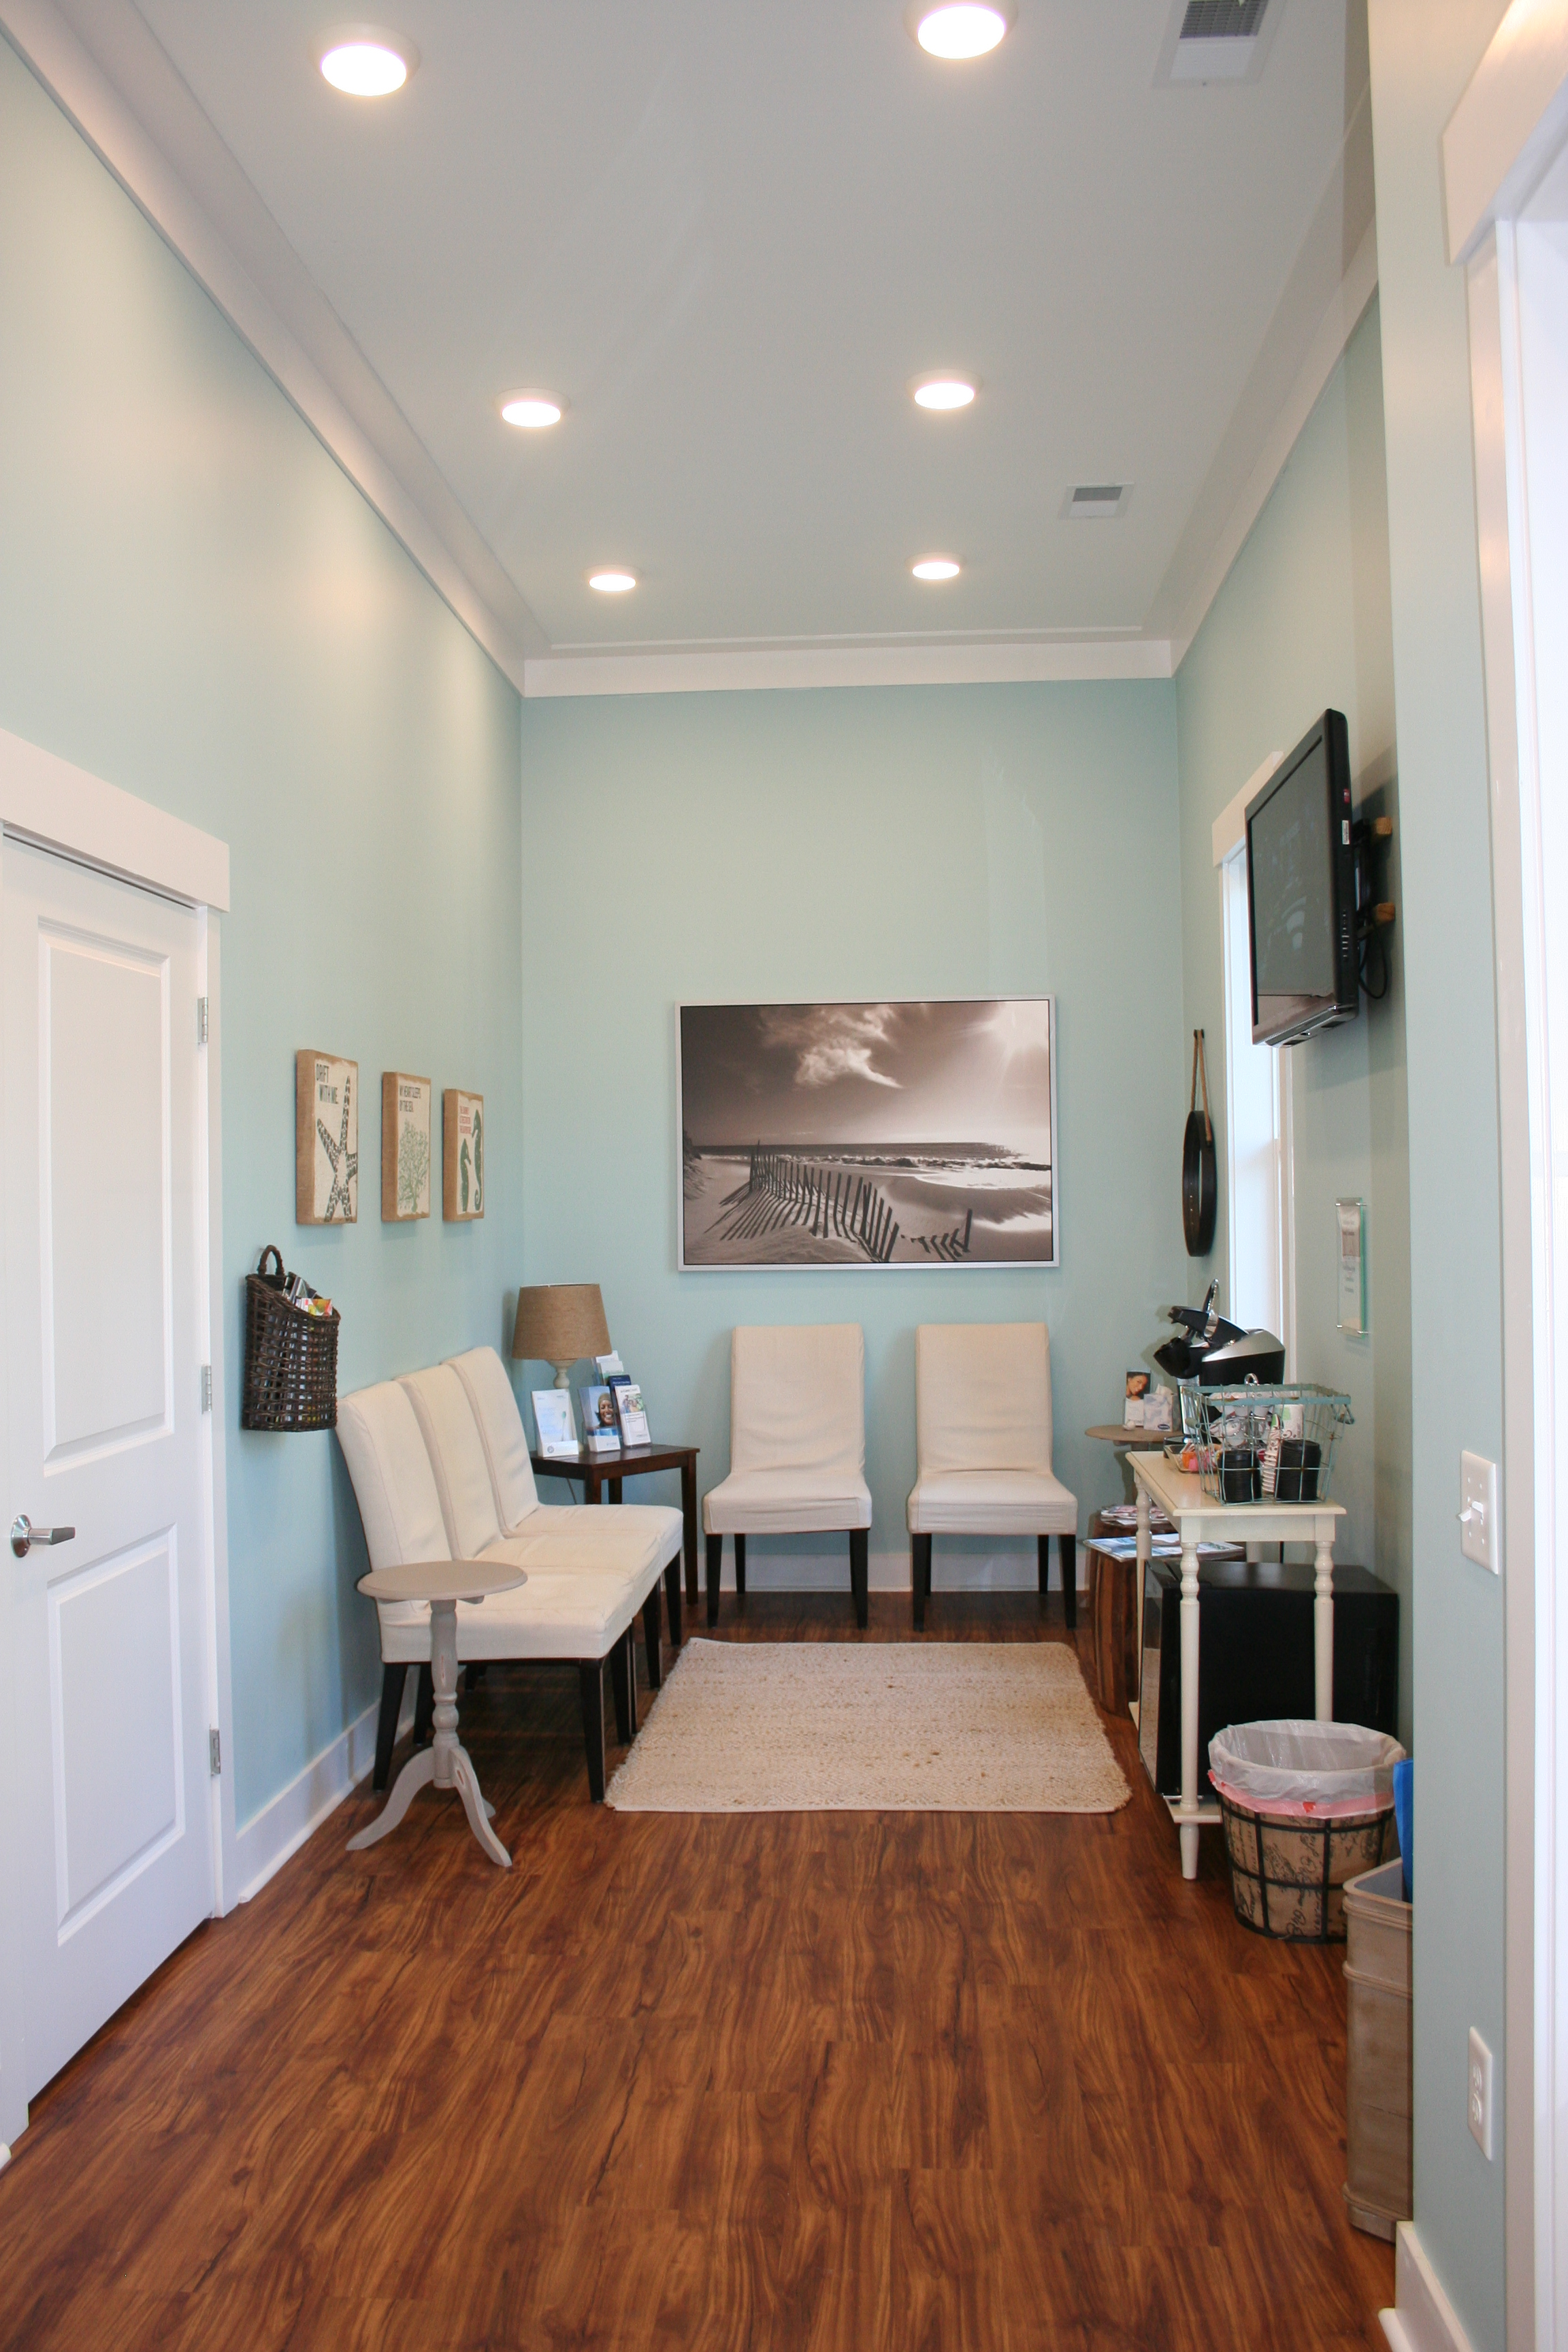 Bluffton Dental Office - Inside View